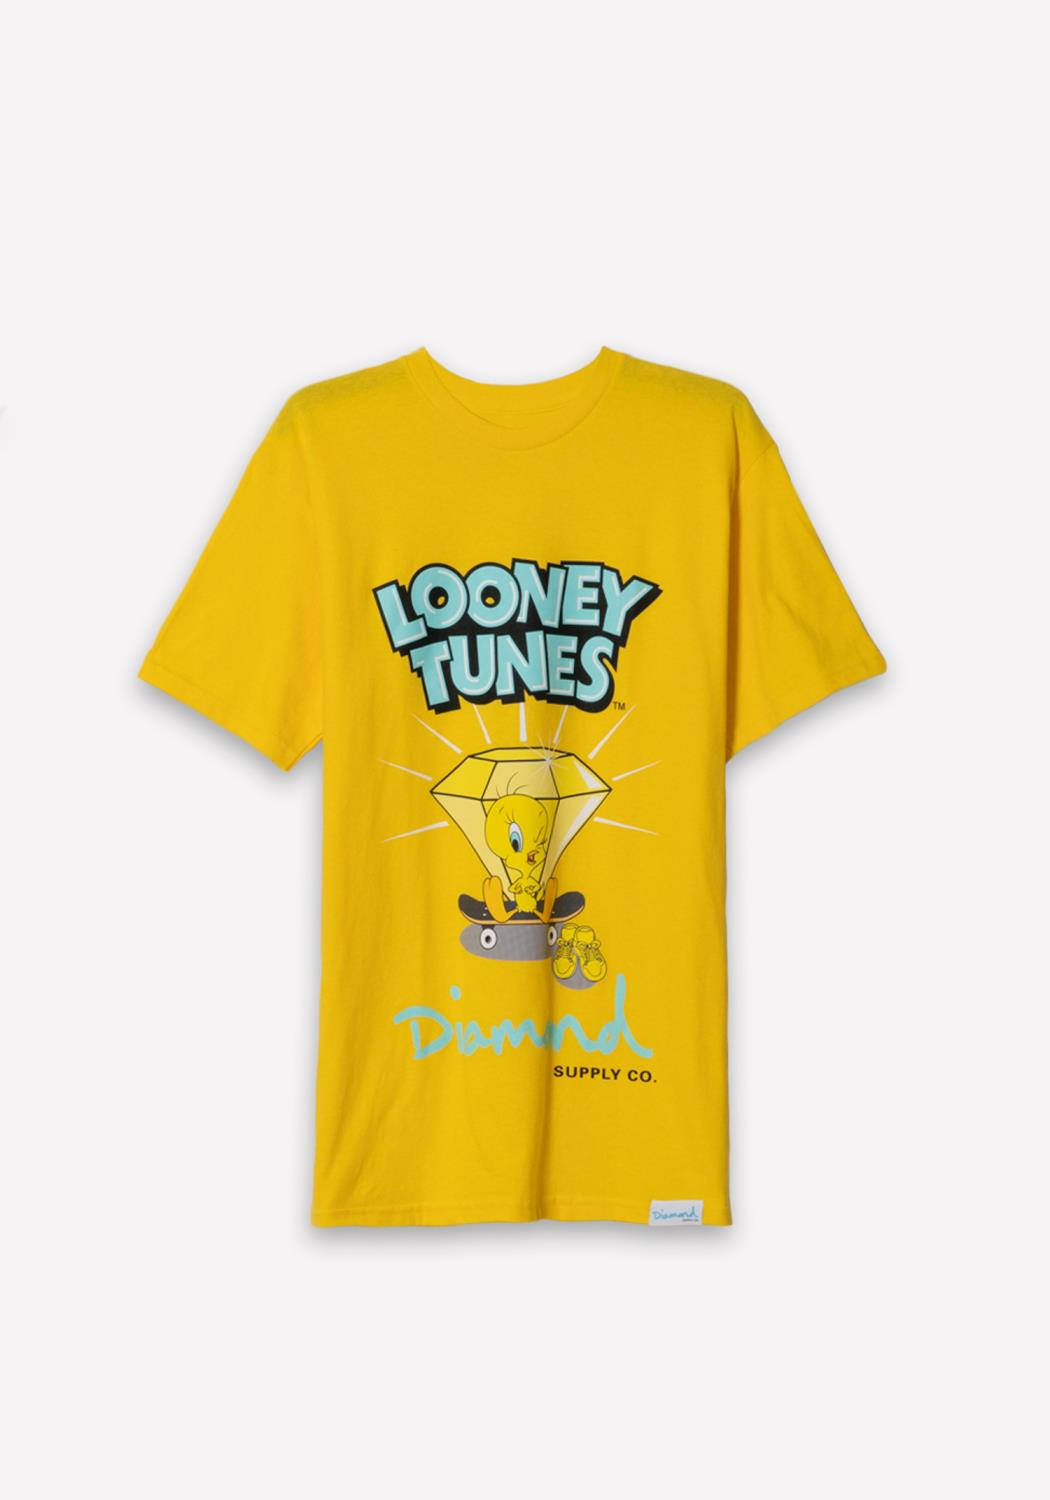 Diamond x Looney Tunes Tweety Skate Tee in Yellow